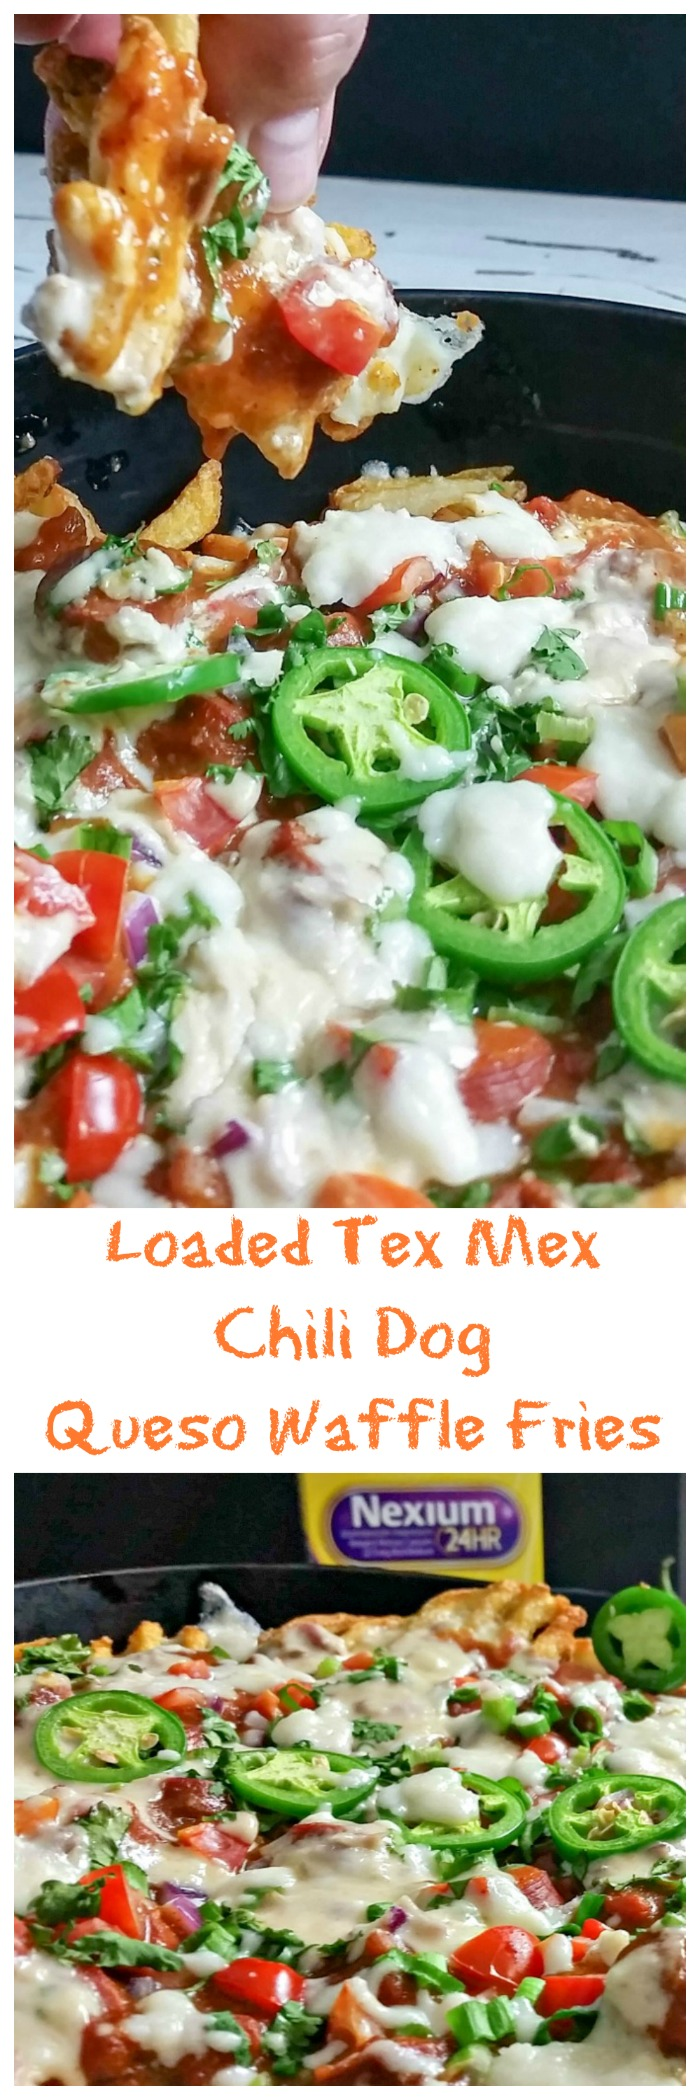 Be prepared for Race Day with my Loaded Tex Mex Chili Dog Queso Waffle Fries. Chili dogs meats queso fries